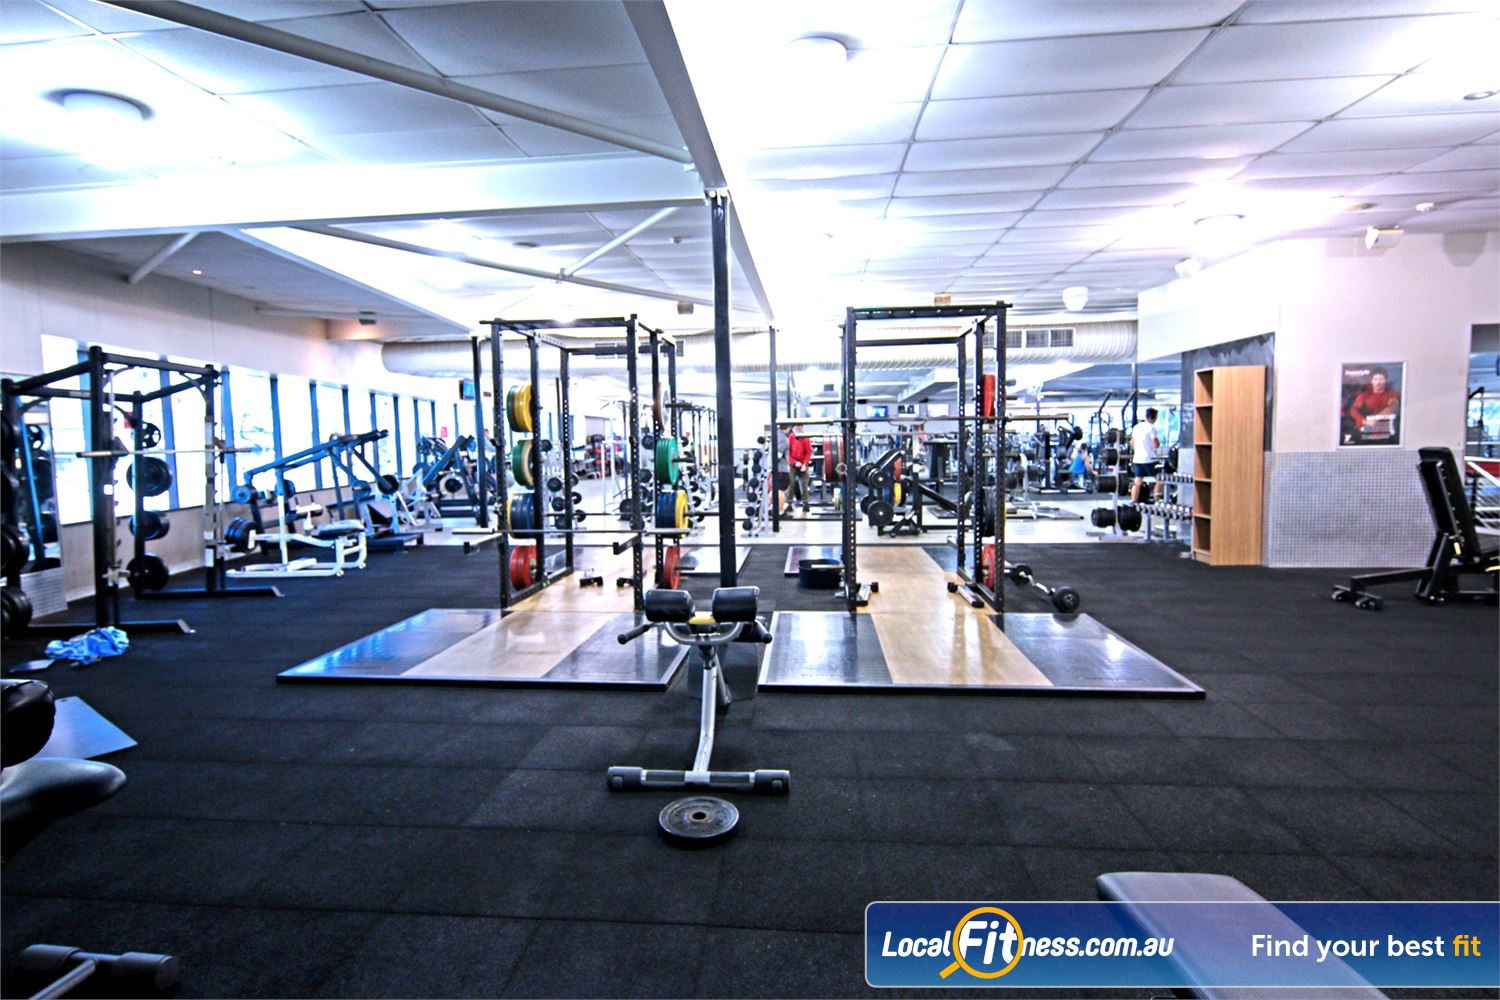 Fitness First Lutwyche Welcome to the Fitness First Lutwyche gym.